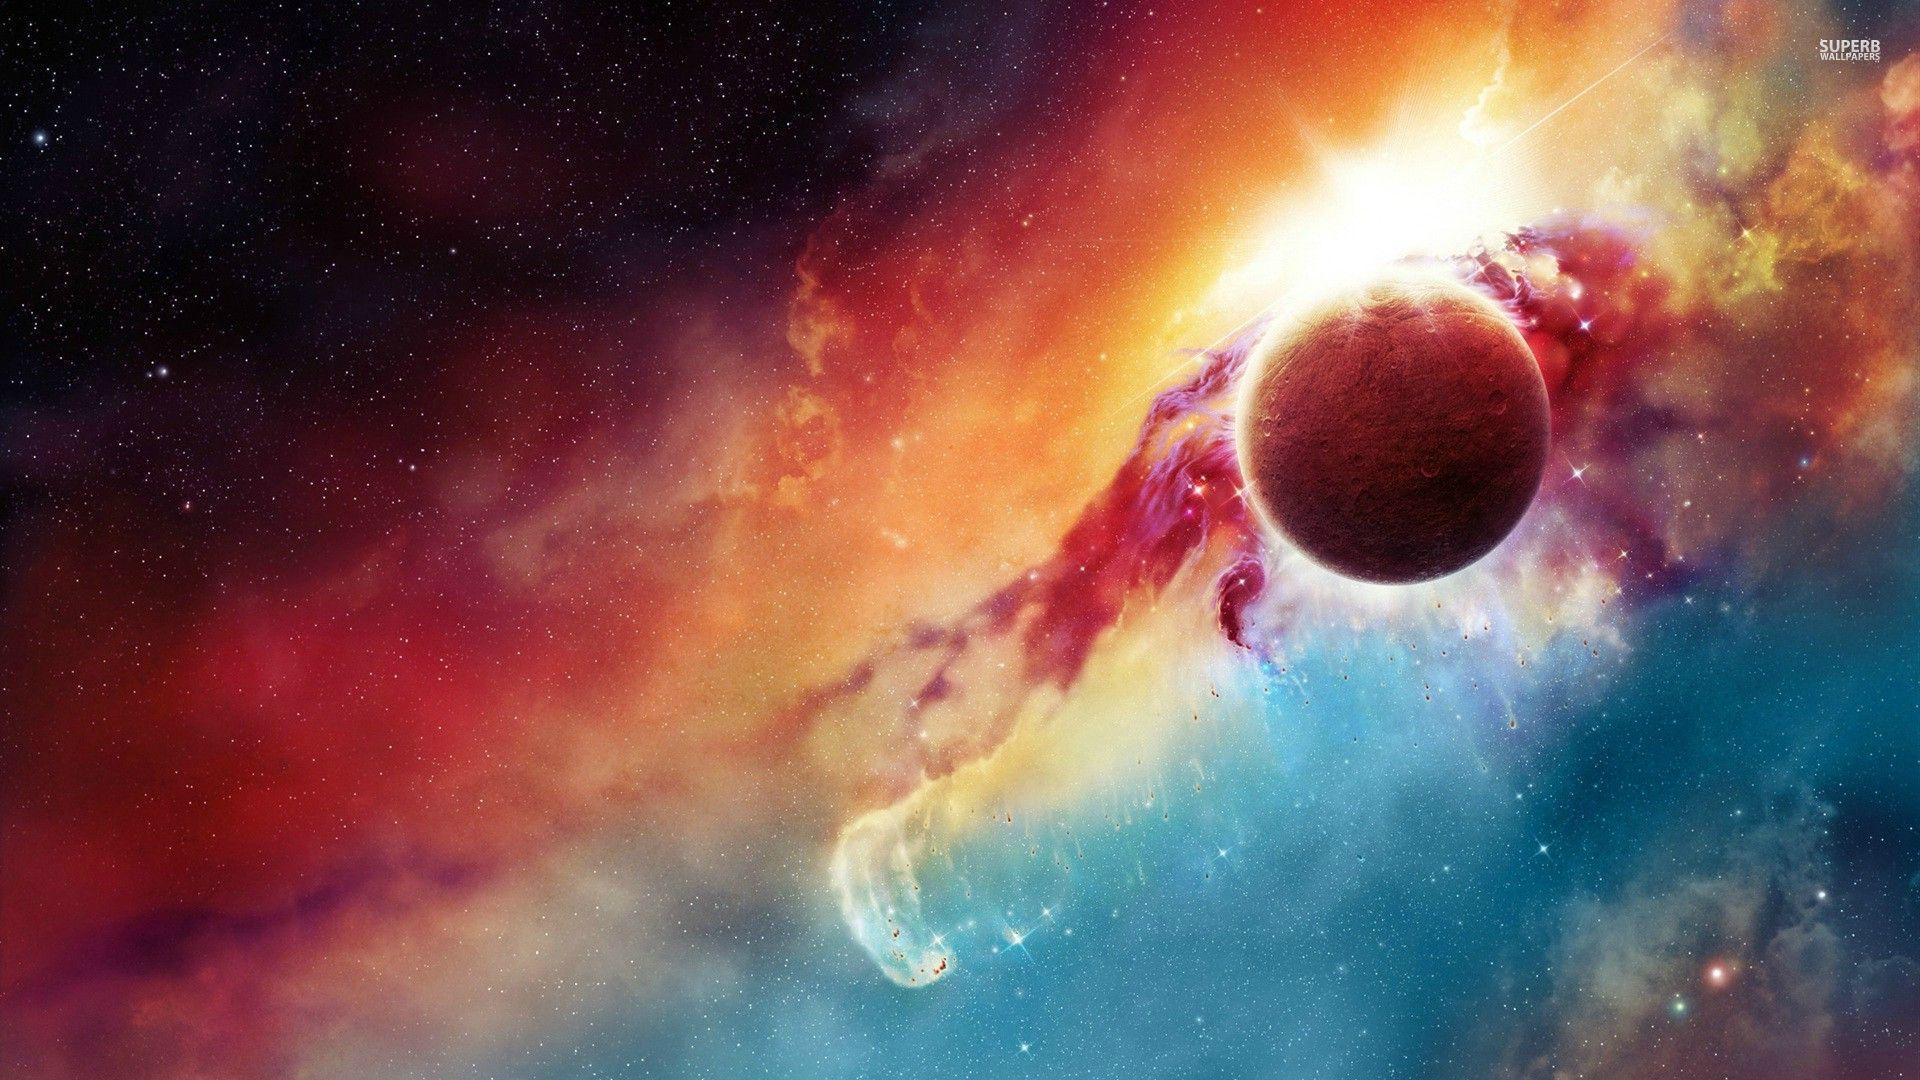 colorful-nebula-behind-the-planet-28543-1920x1080